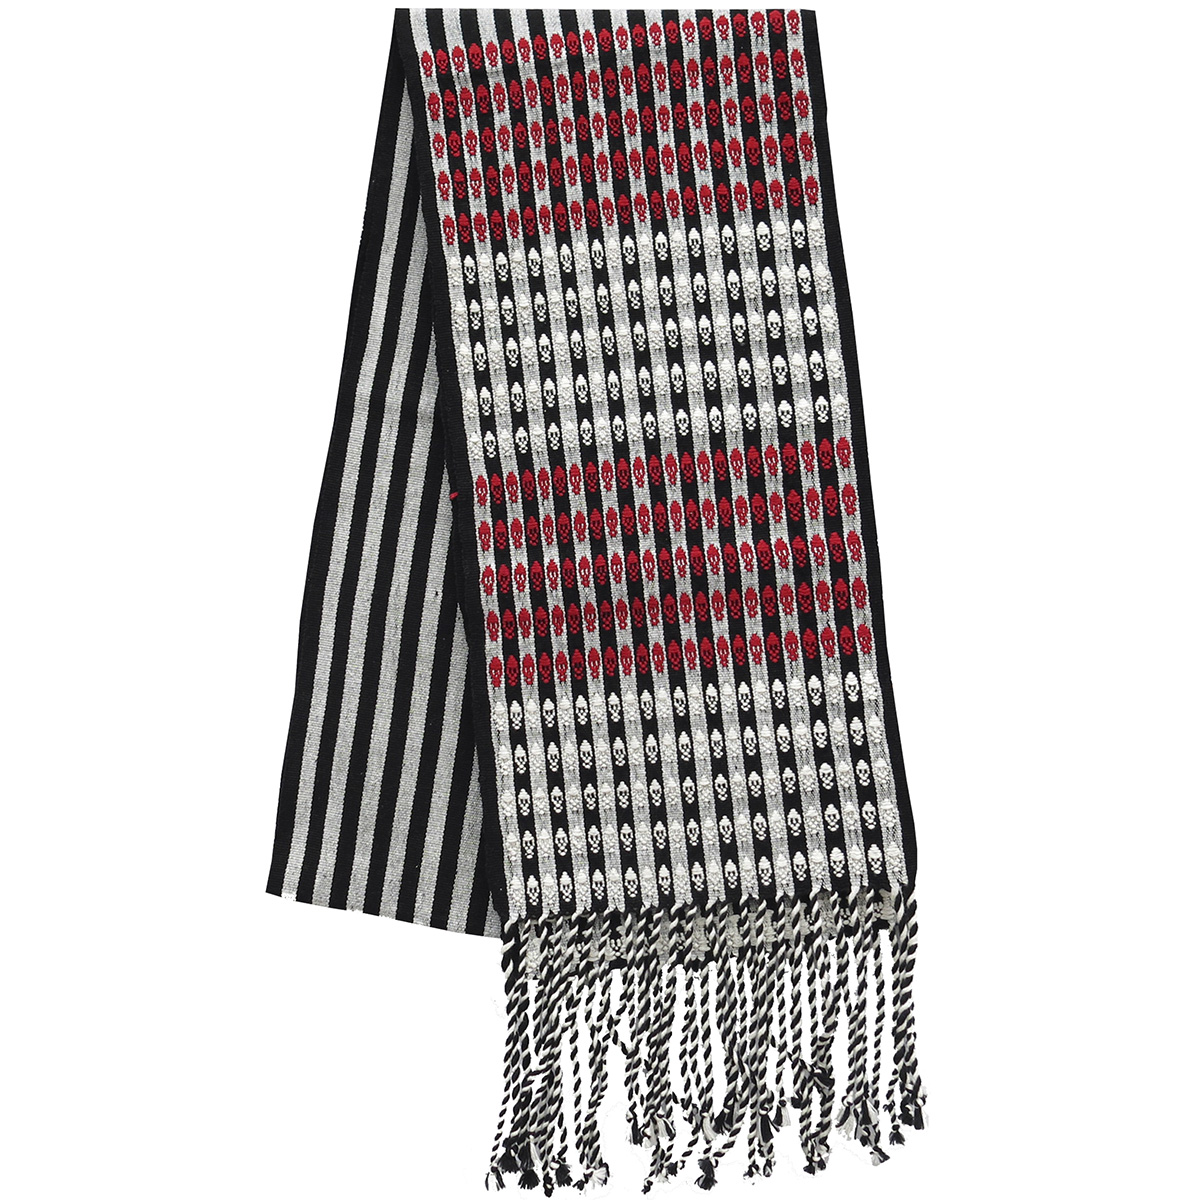 Margarita-Cantu-Scarves-red-white-small-MarionFriedmannGallery-MexicoDesignTime15.jpg